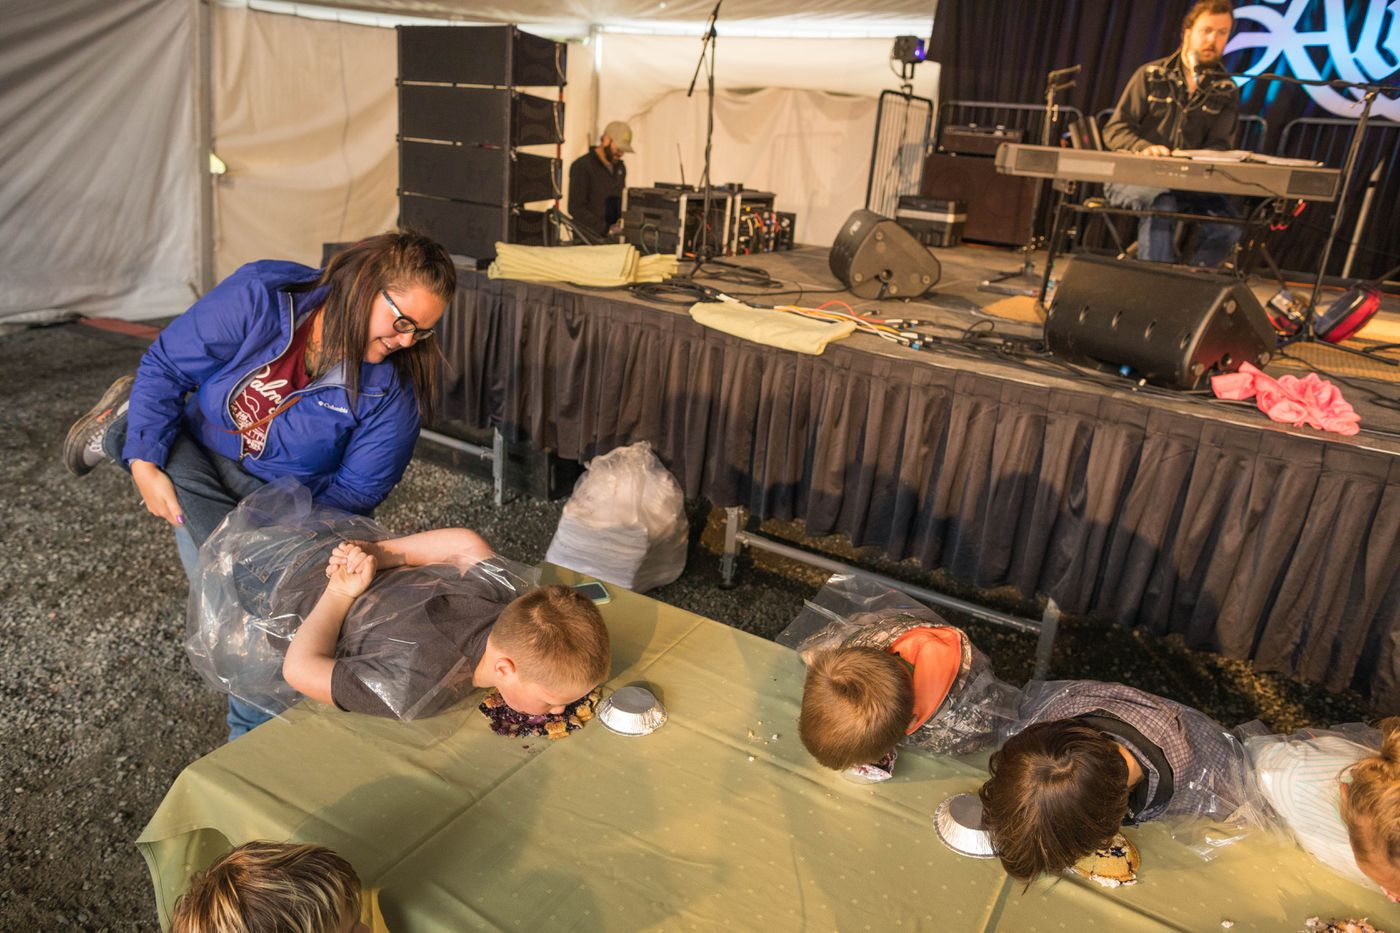 Kimberly Kennedy-Suggs holds up her son Huck Suggs's legs during a pie-eating contest Saturday, Aug. 18, 2018 at Alyeska Resort. The Blueberry Festival continues Sunday, featuring music, food, crafts and more pie-eating contests. (Loren Holmes / ADN)